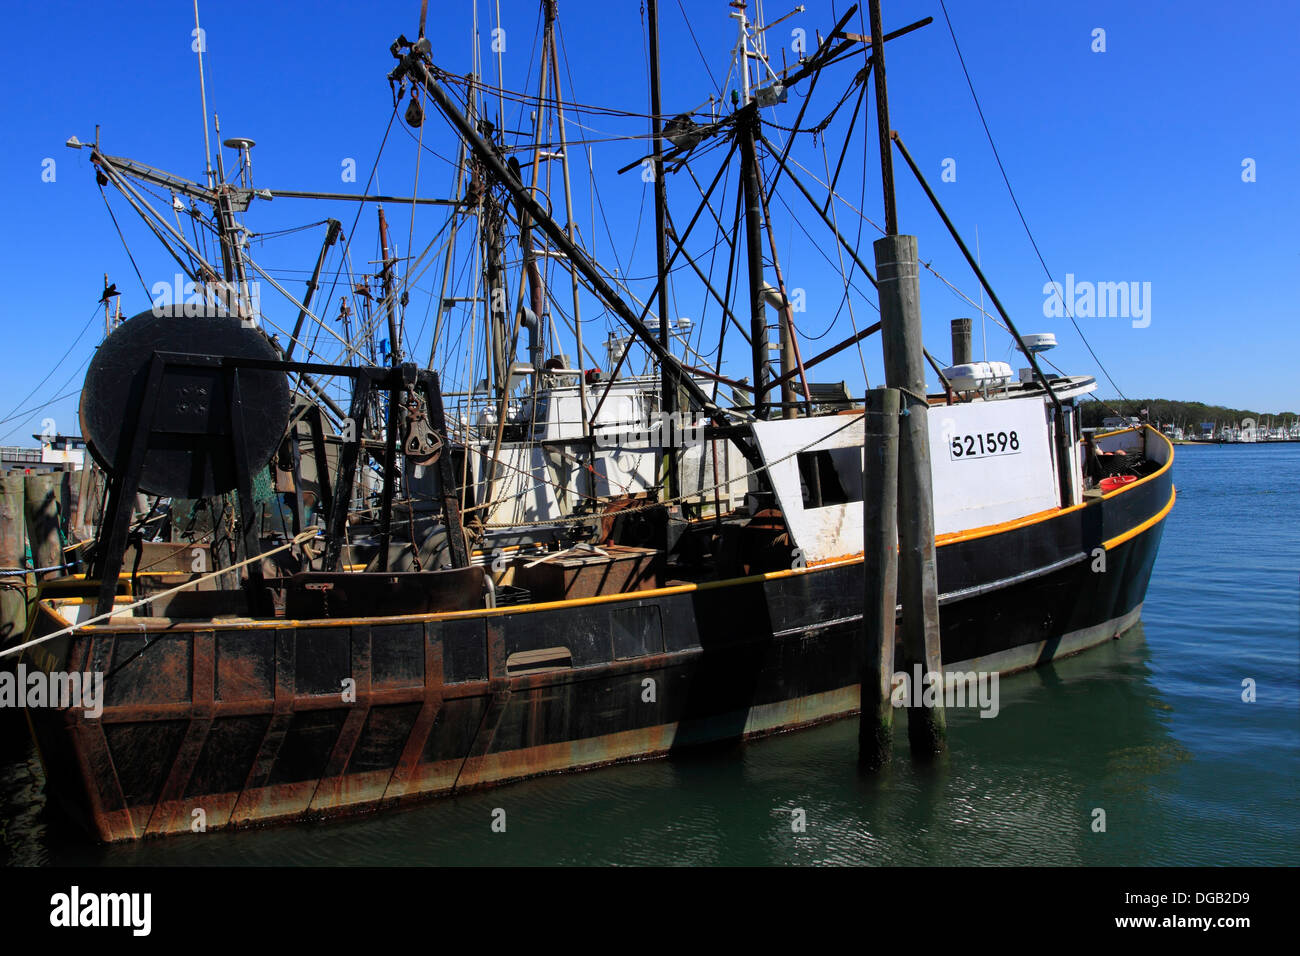 Commercial fishing boat rust stock photos commercial for Fishing boats long island